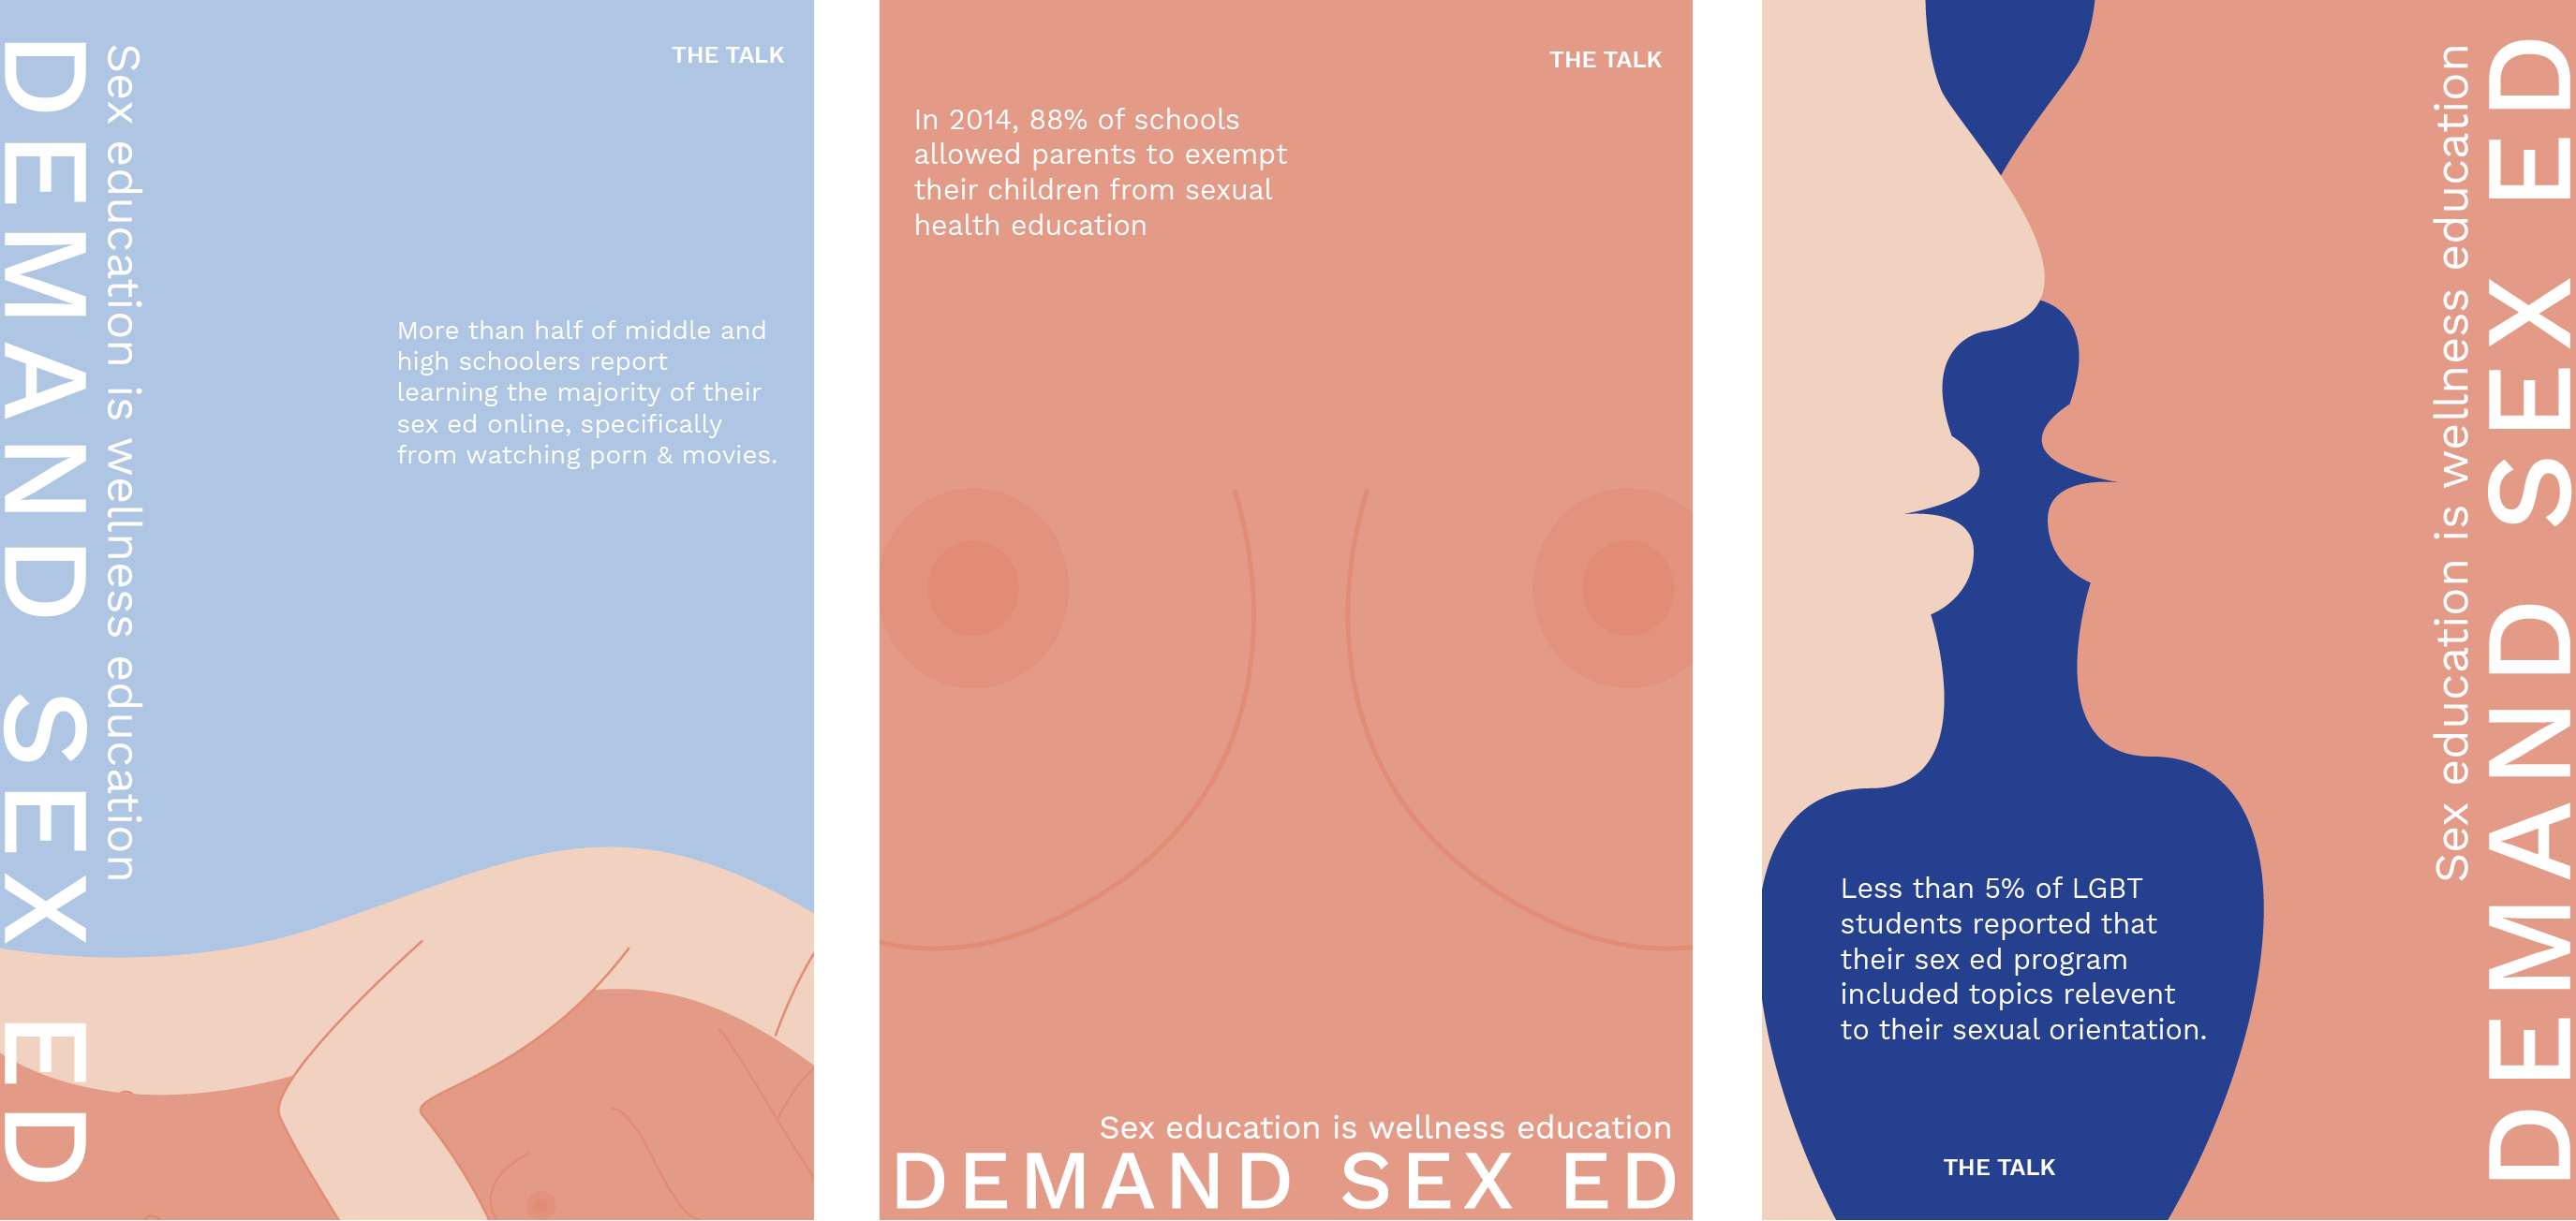 Posters created for The Talk